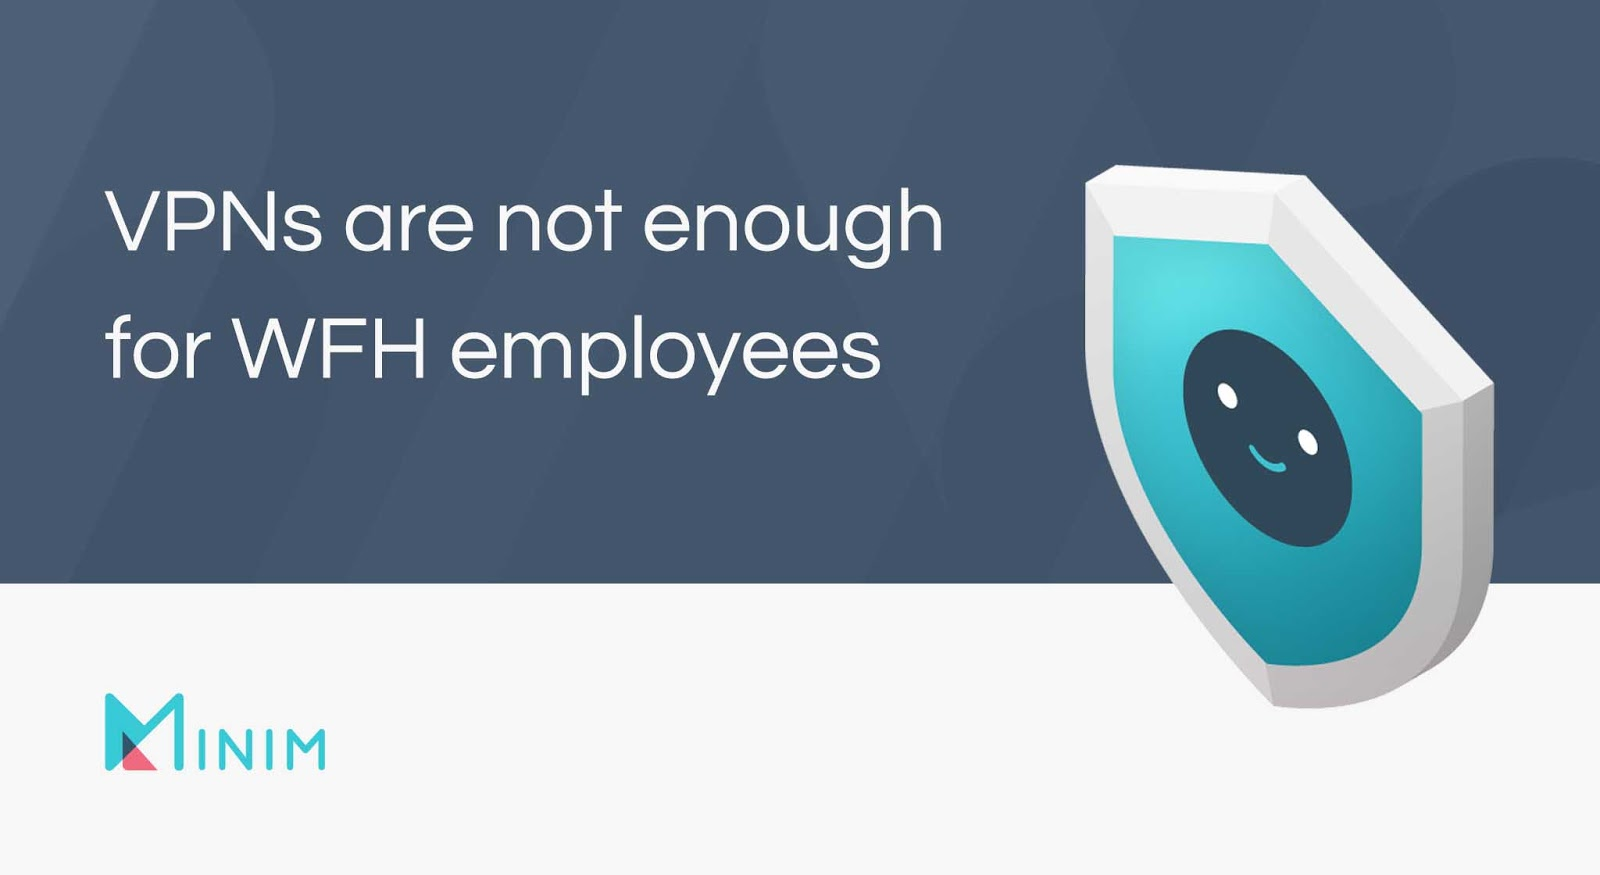 VPNs are not enough for WFH employees